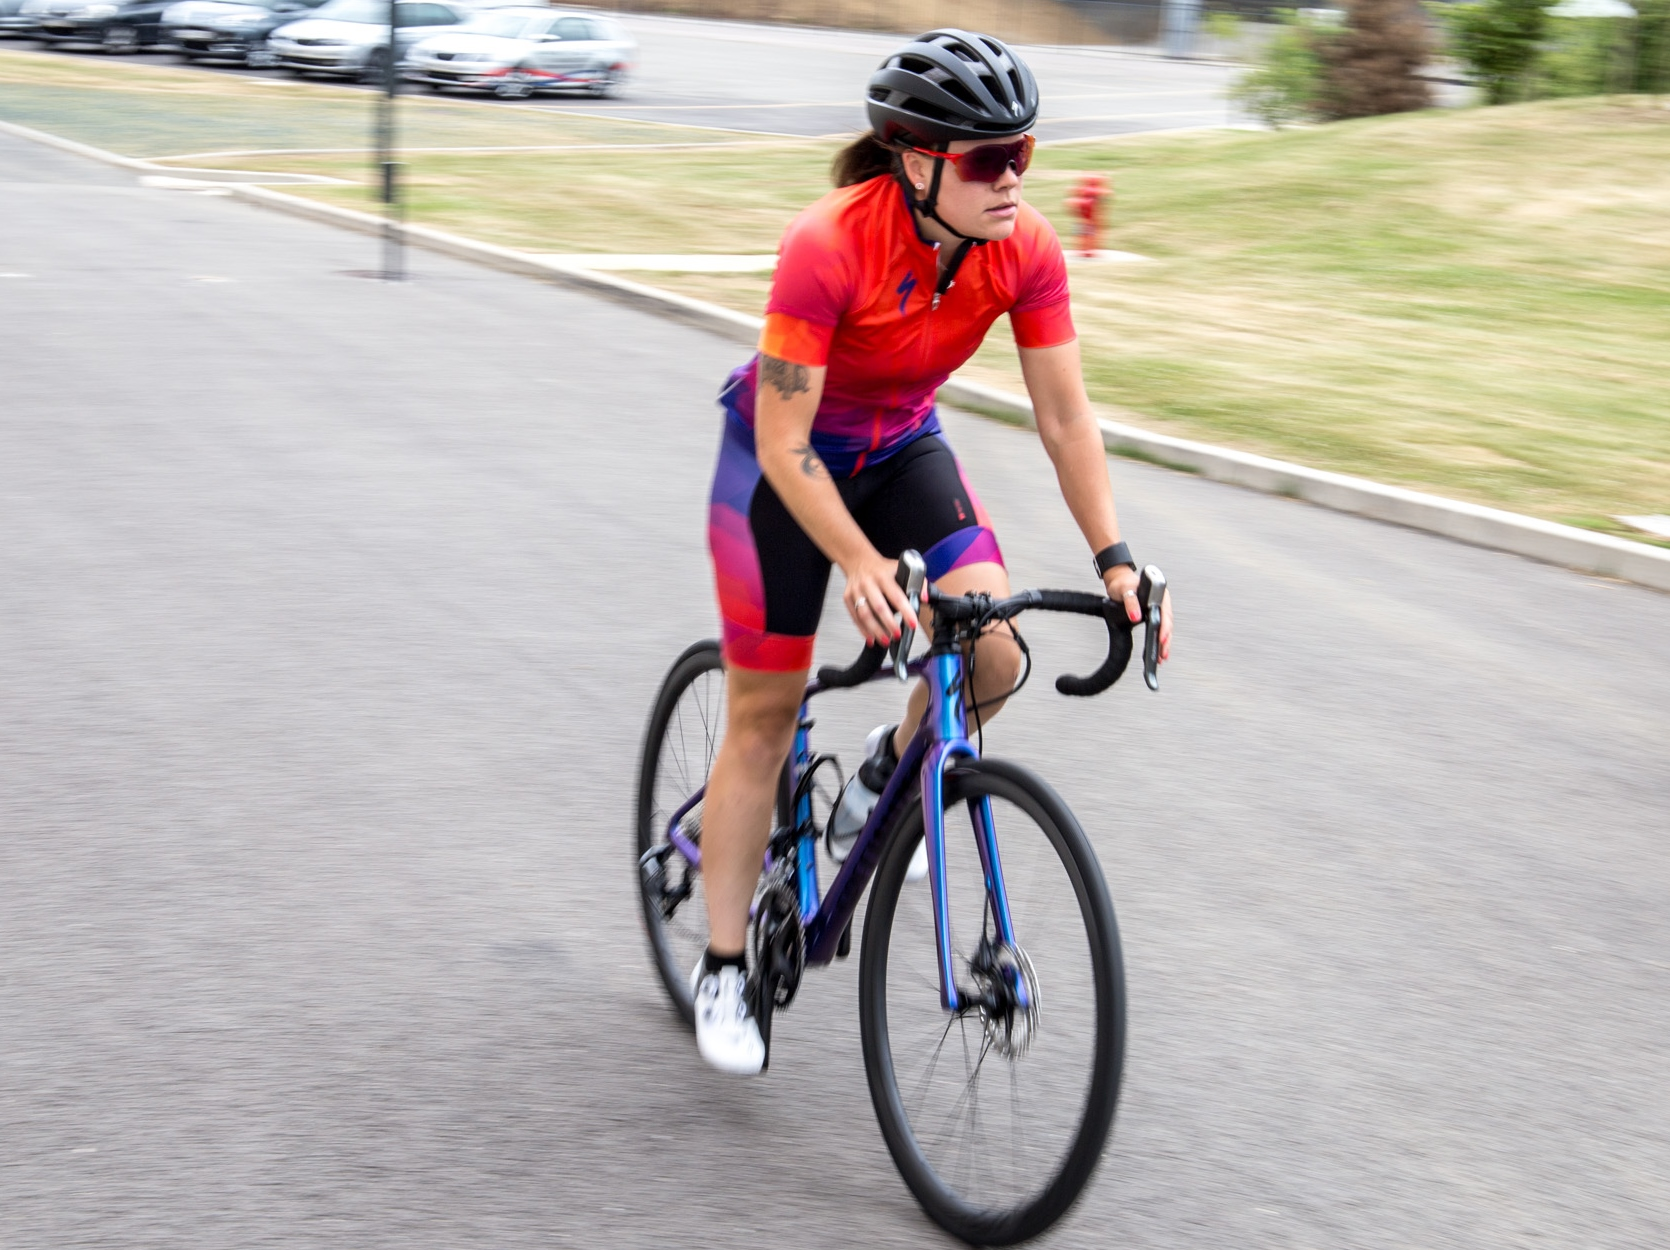 The Ruby handled like any performance bike should –she's fast, agile and snappy. It was truly a joy to ride.